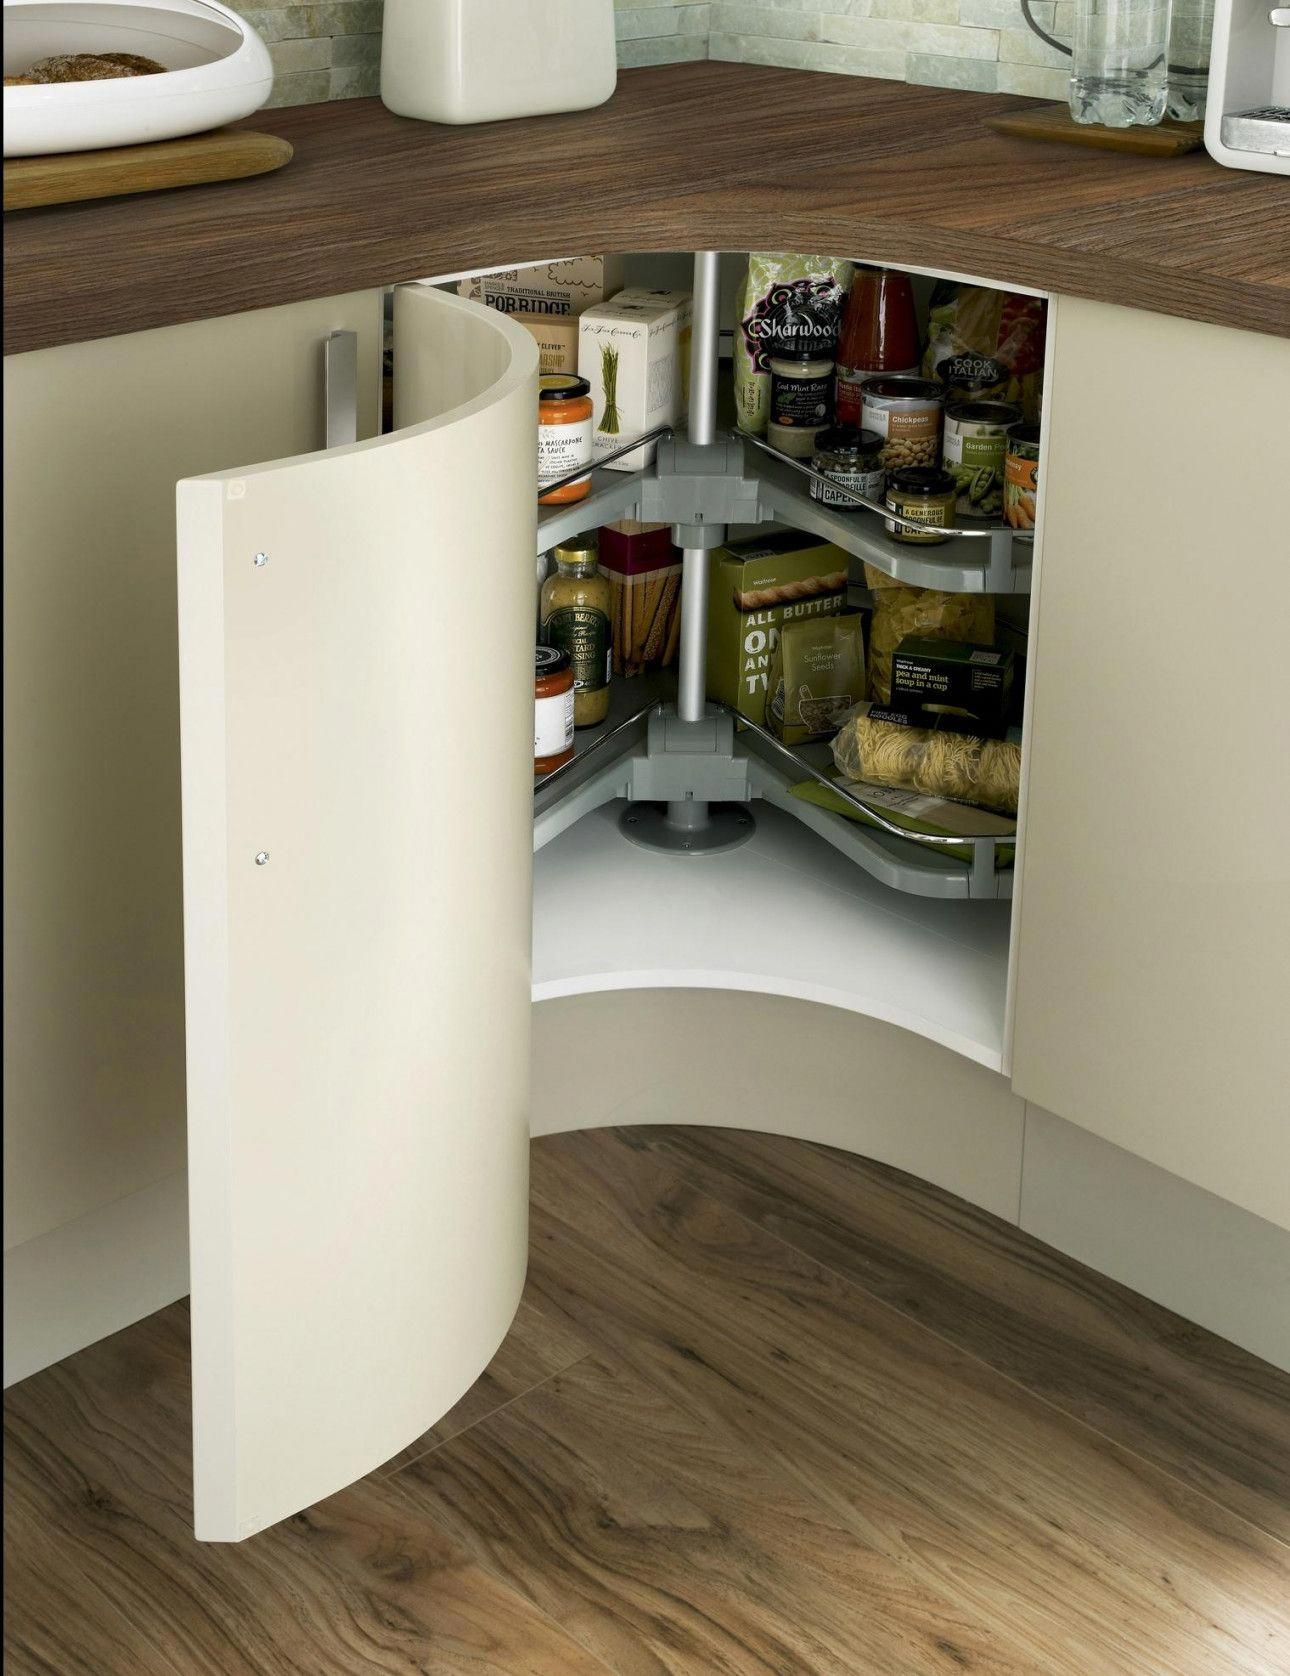 #kitchensuppliers | Rounded kitchen cabinets, Curved ...